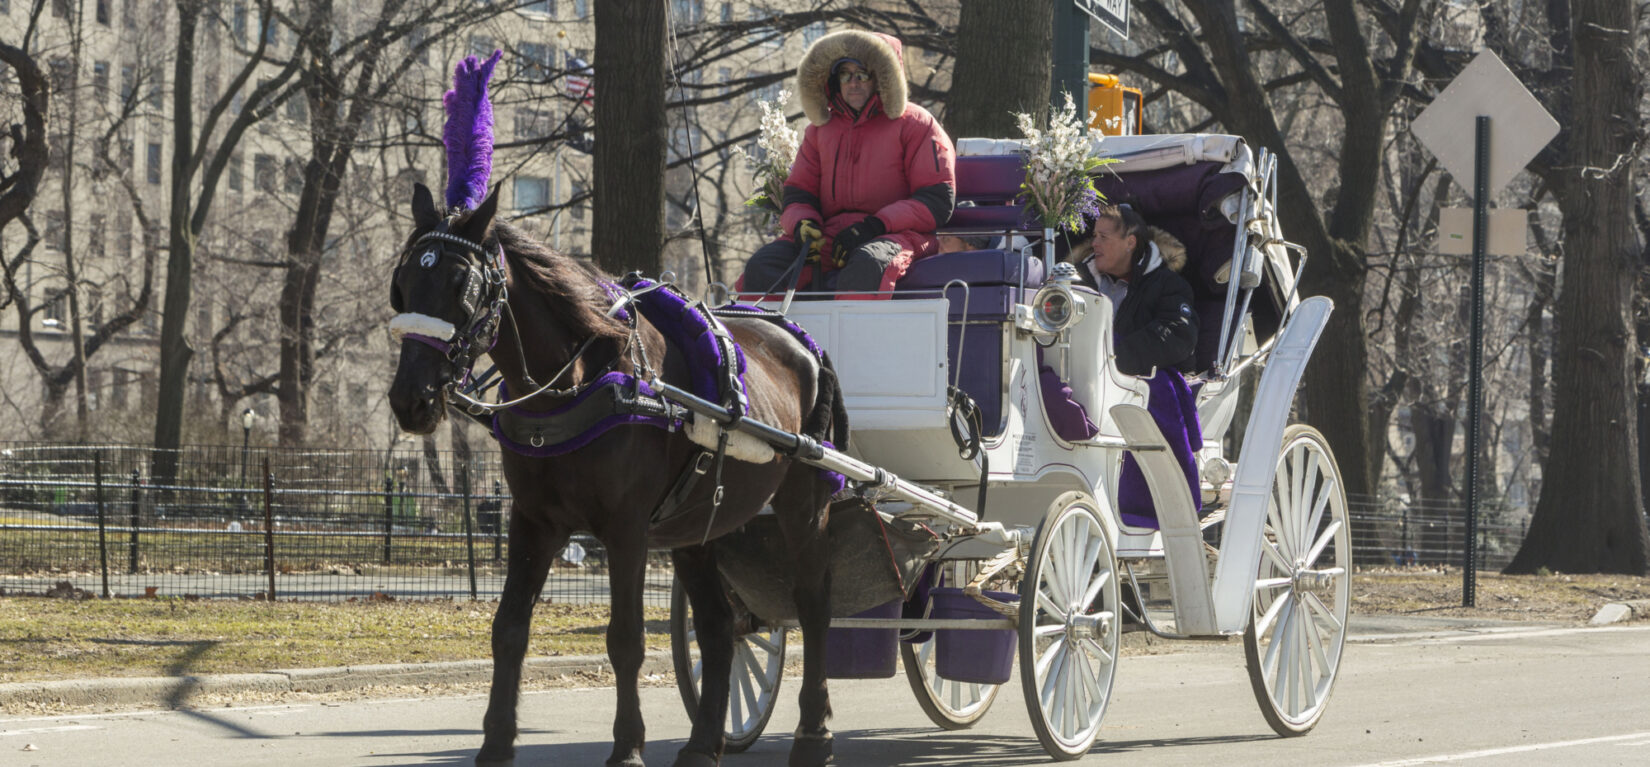 A horse pulls a white carriage down the roadway on a crisp winter's day